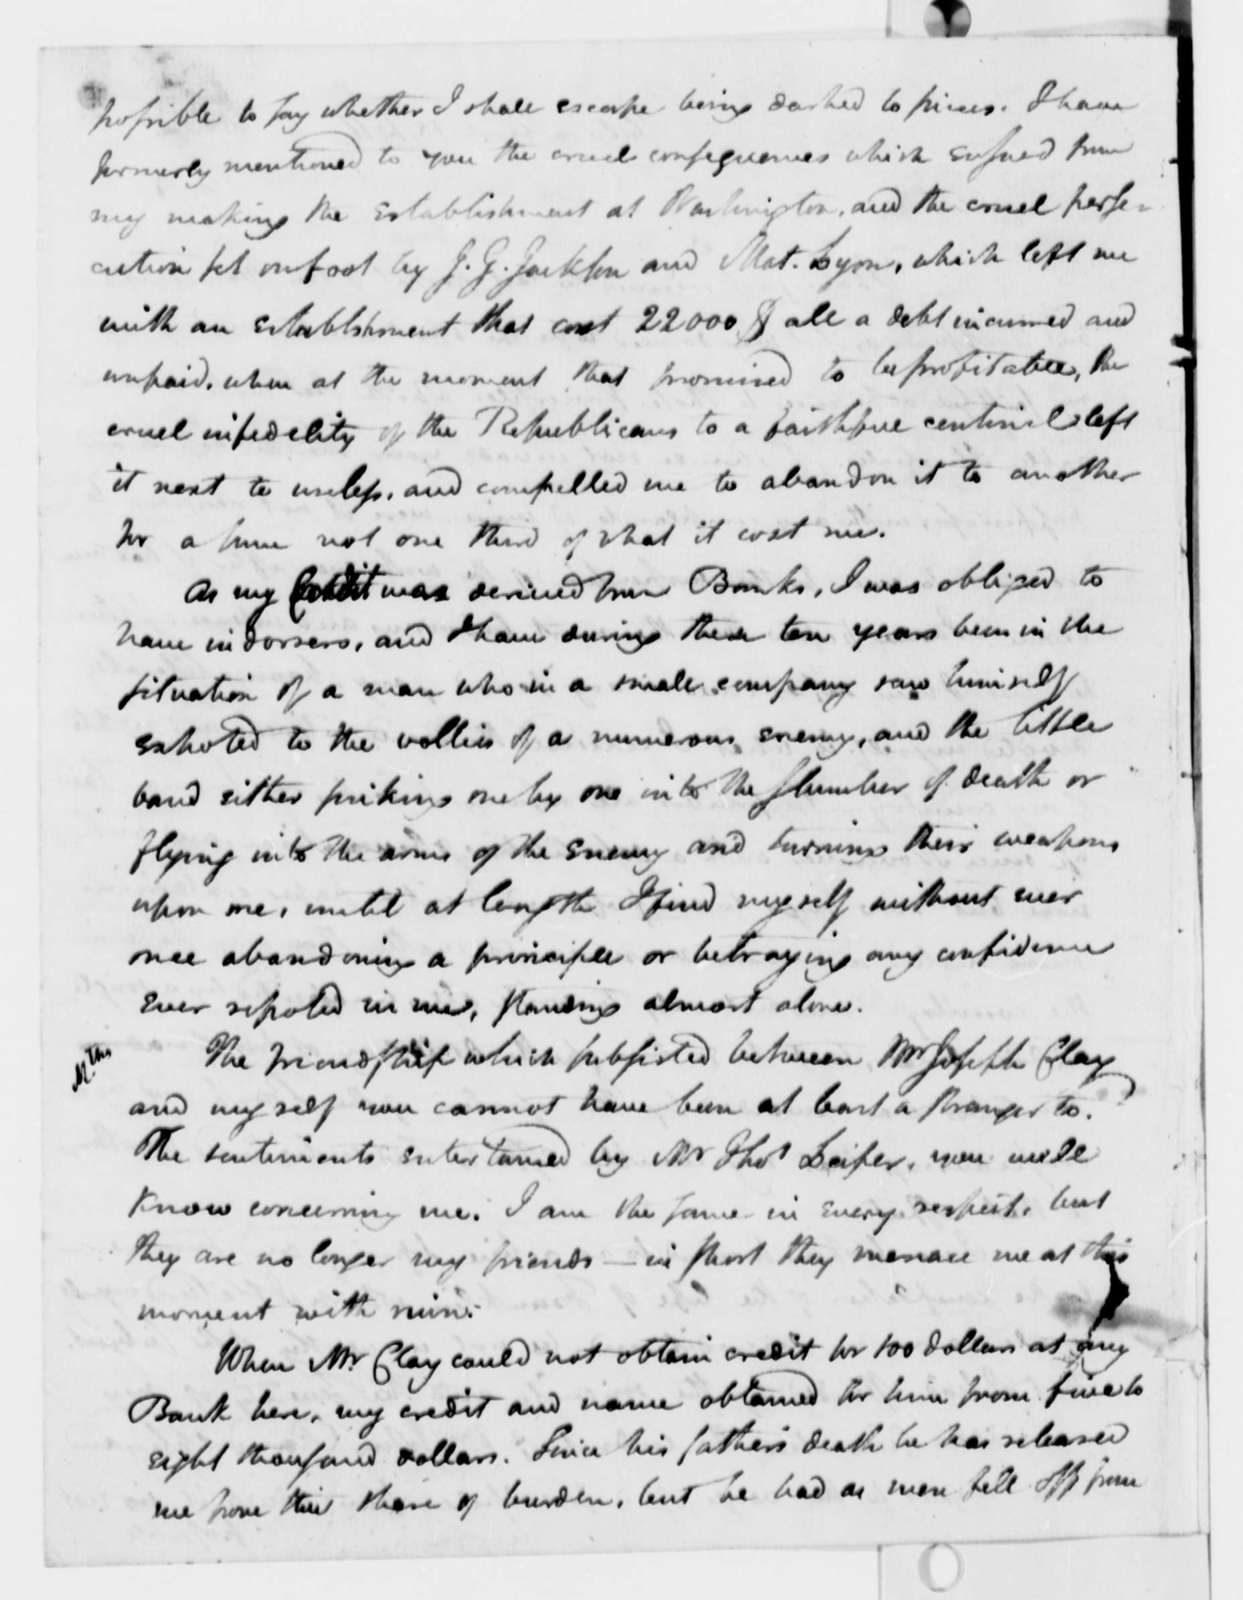 William Duane to Thomas Jefferson, March 15, 1811, with Extract Copy